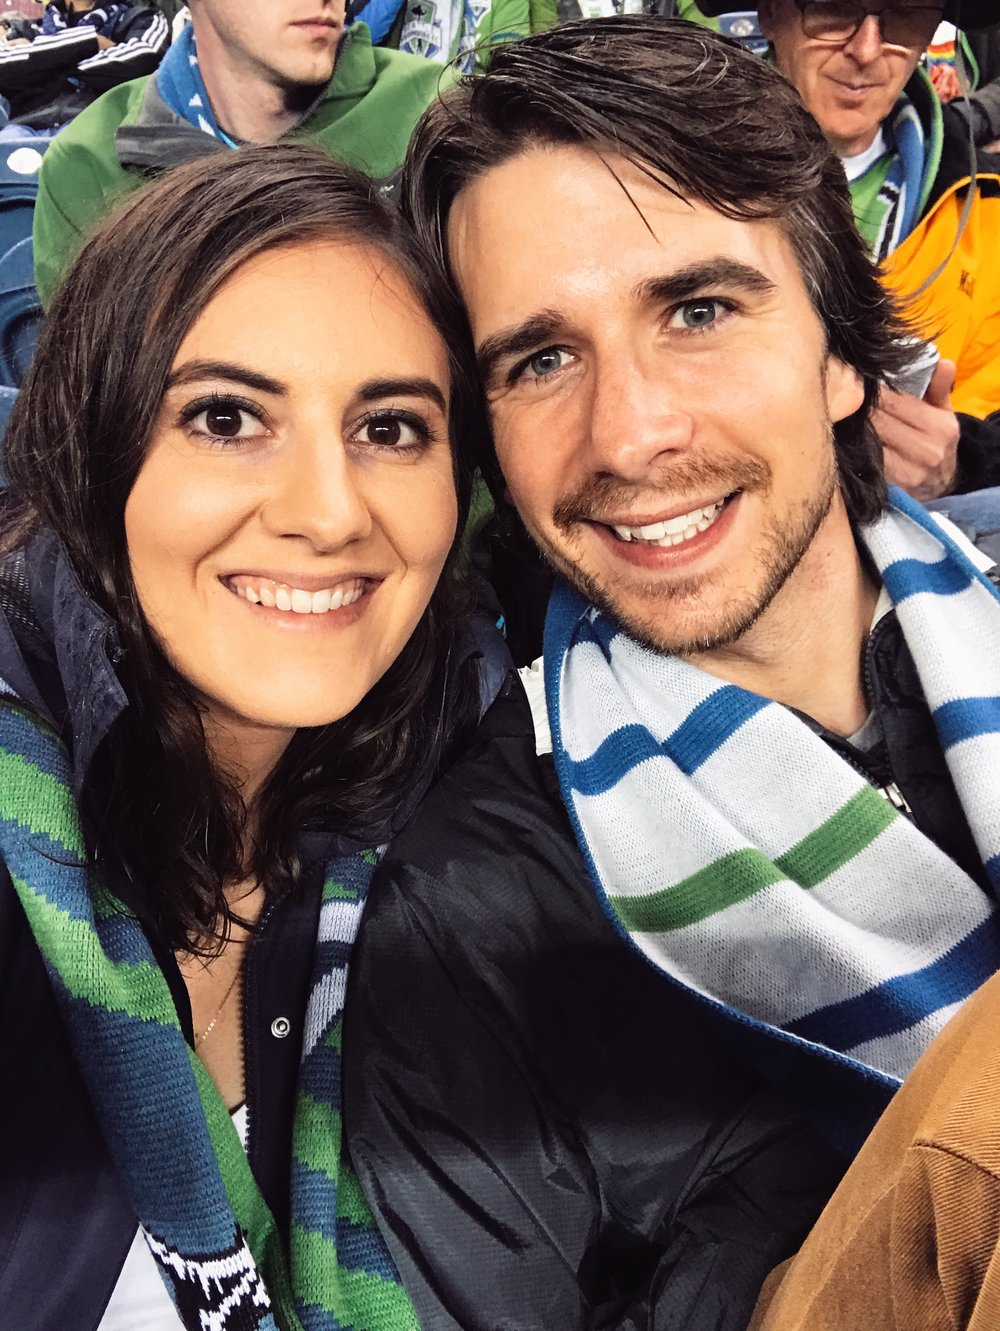 Sounders game against Houston dynamo